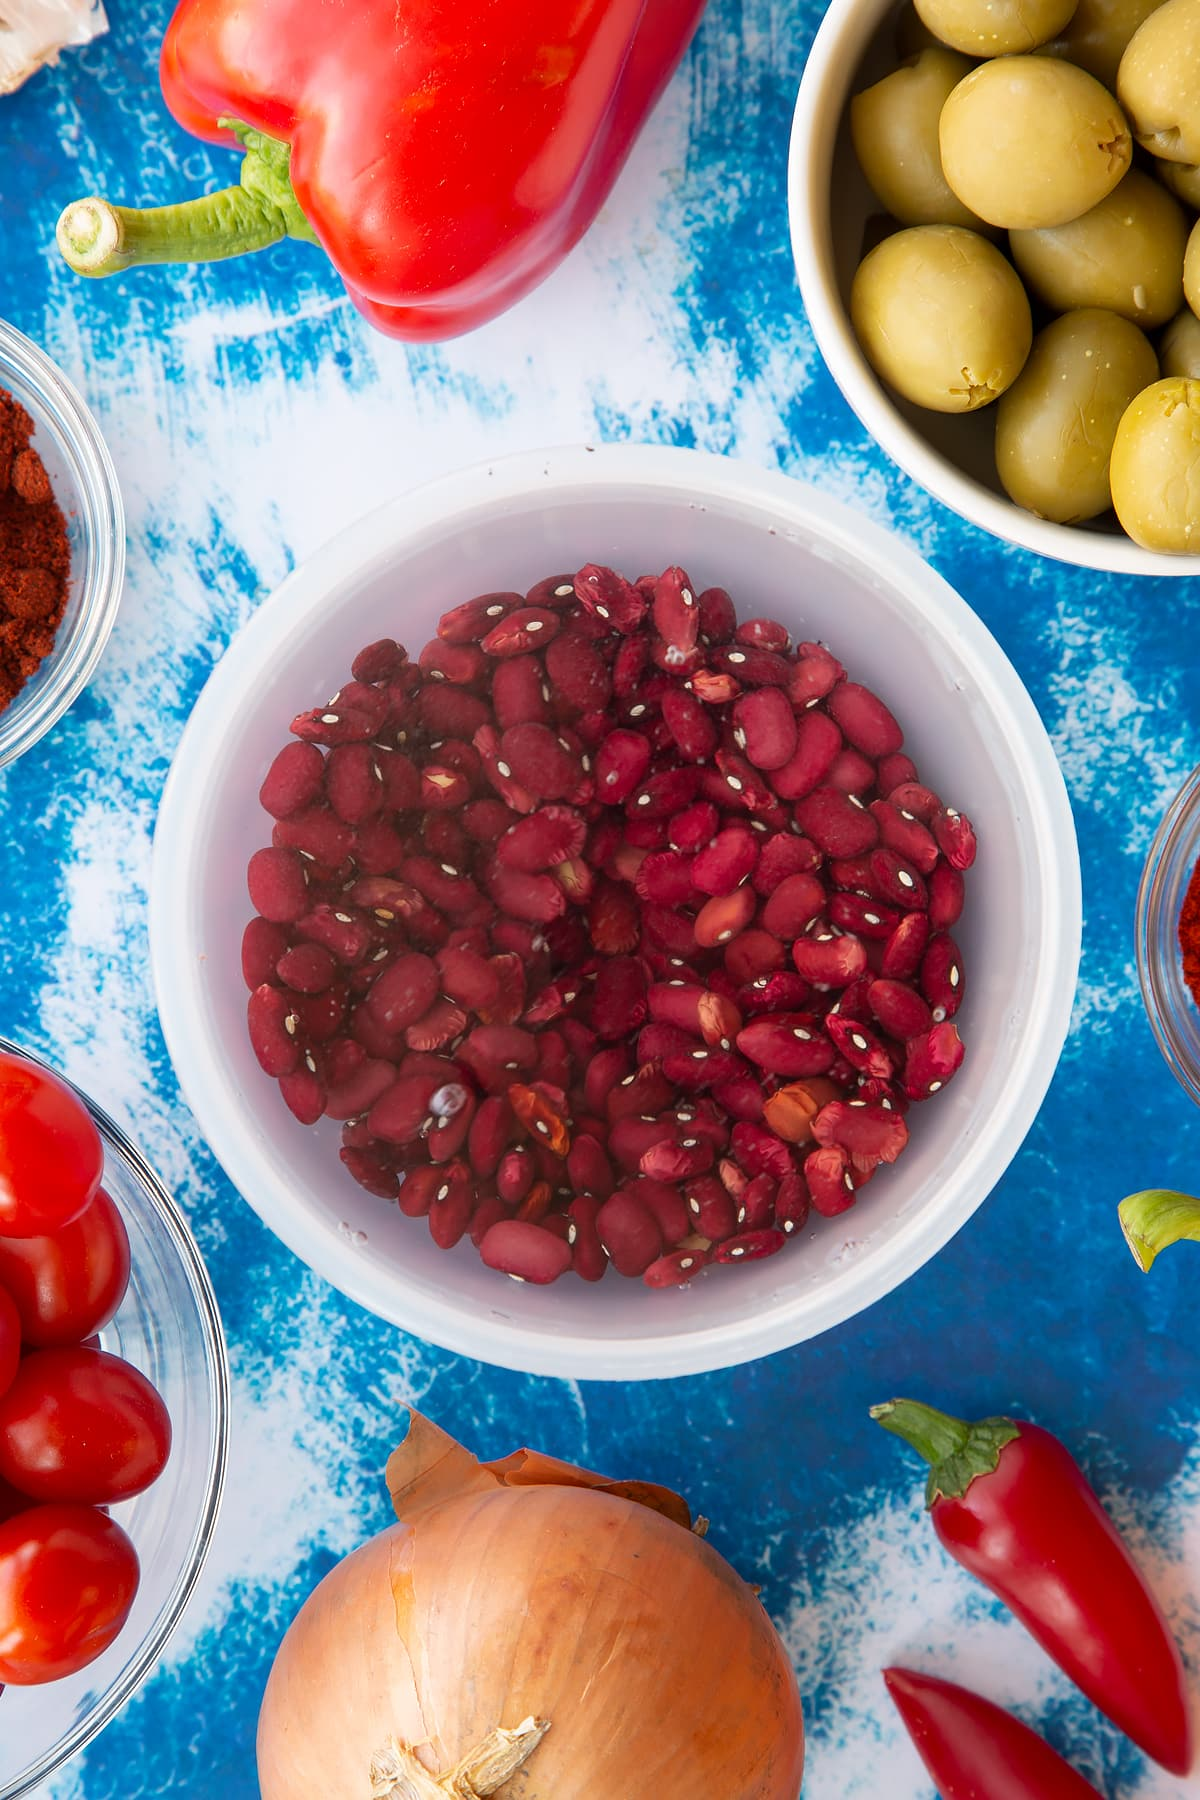 Dried kidney beans covered with water in a small pot. Ingredients to make easy Spanish rice and beans surround the pot.